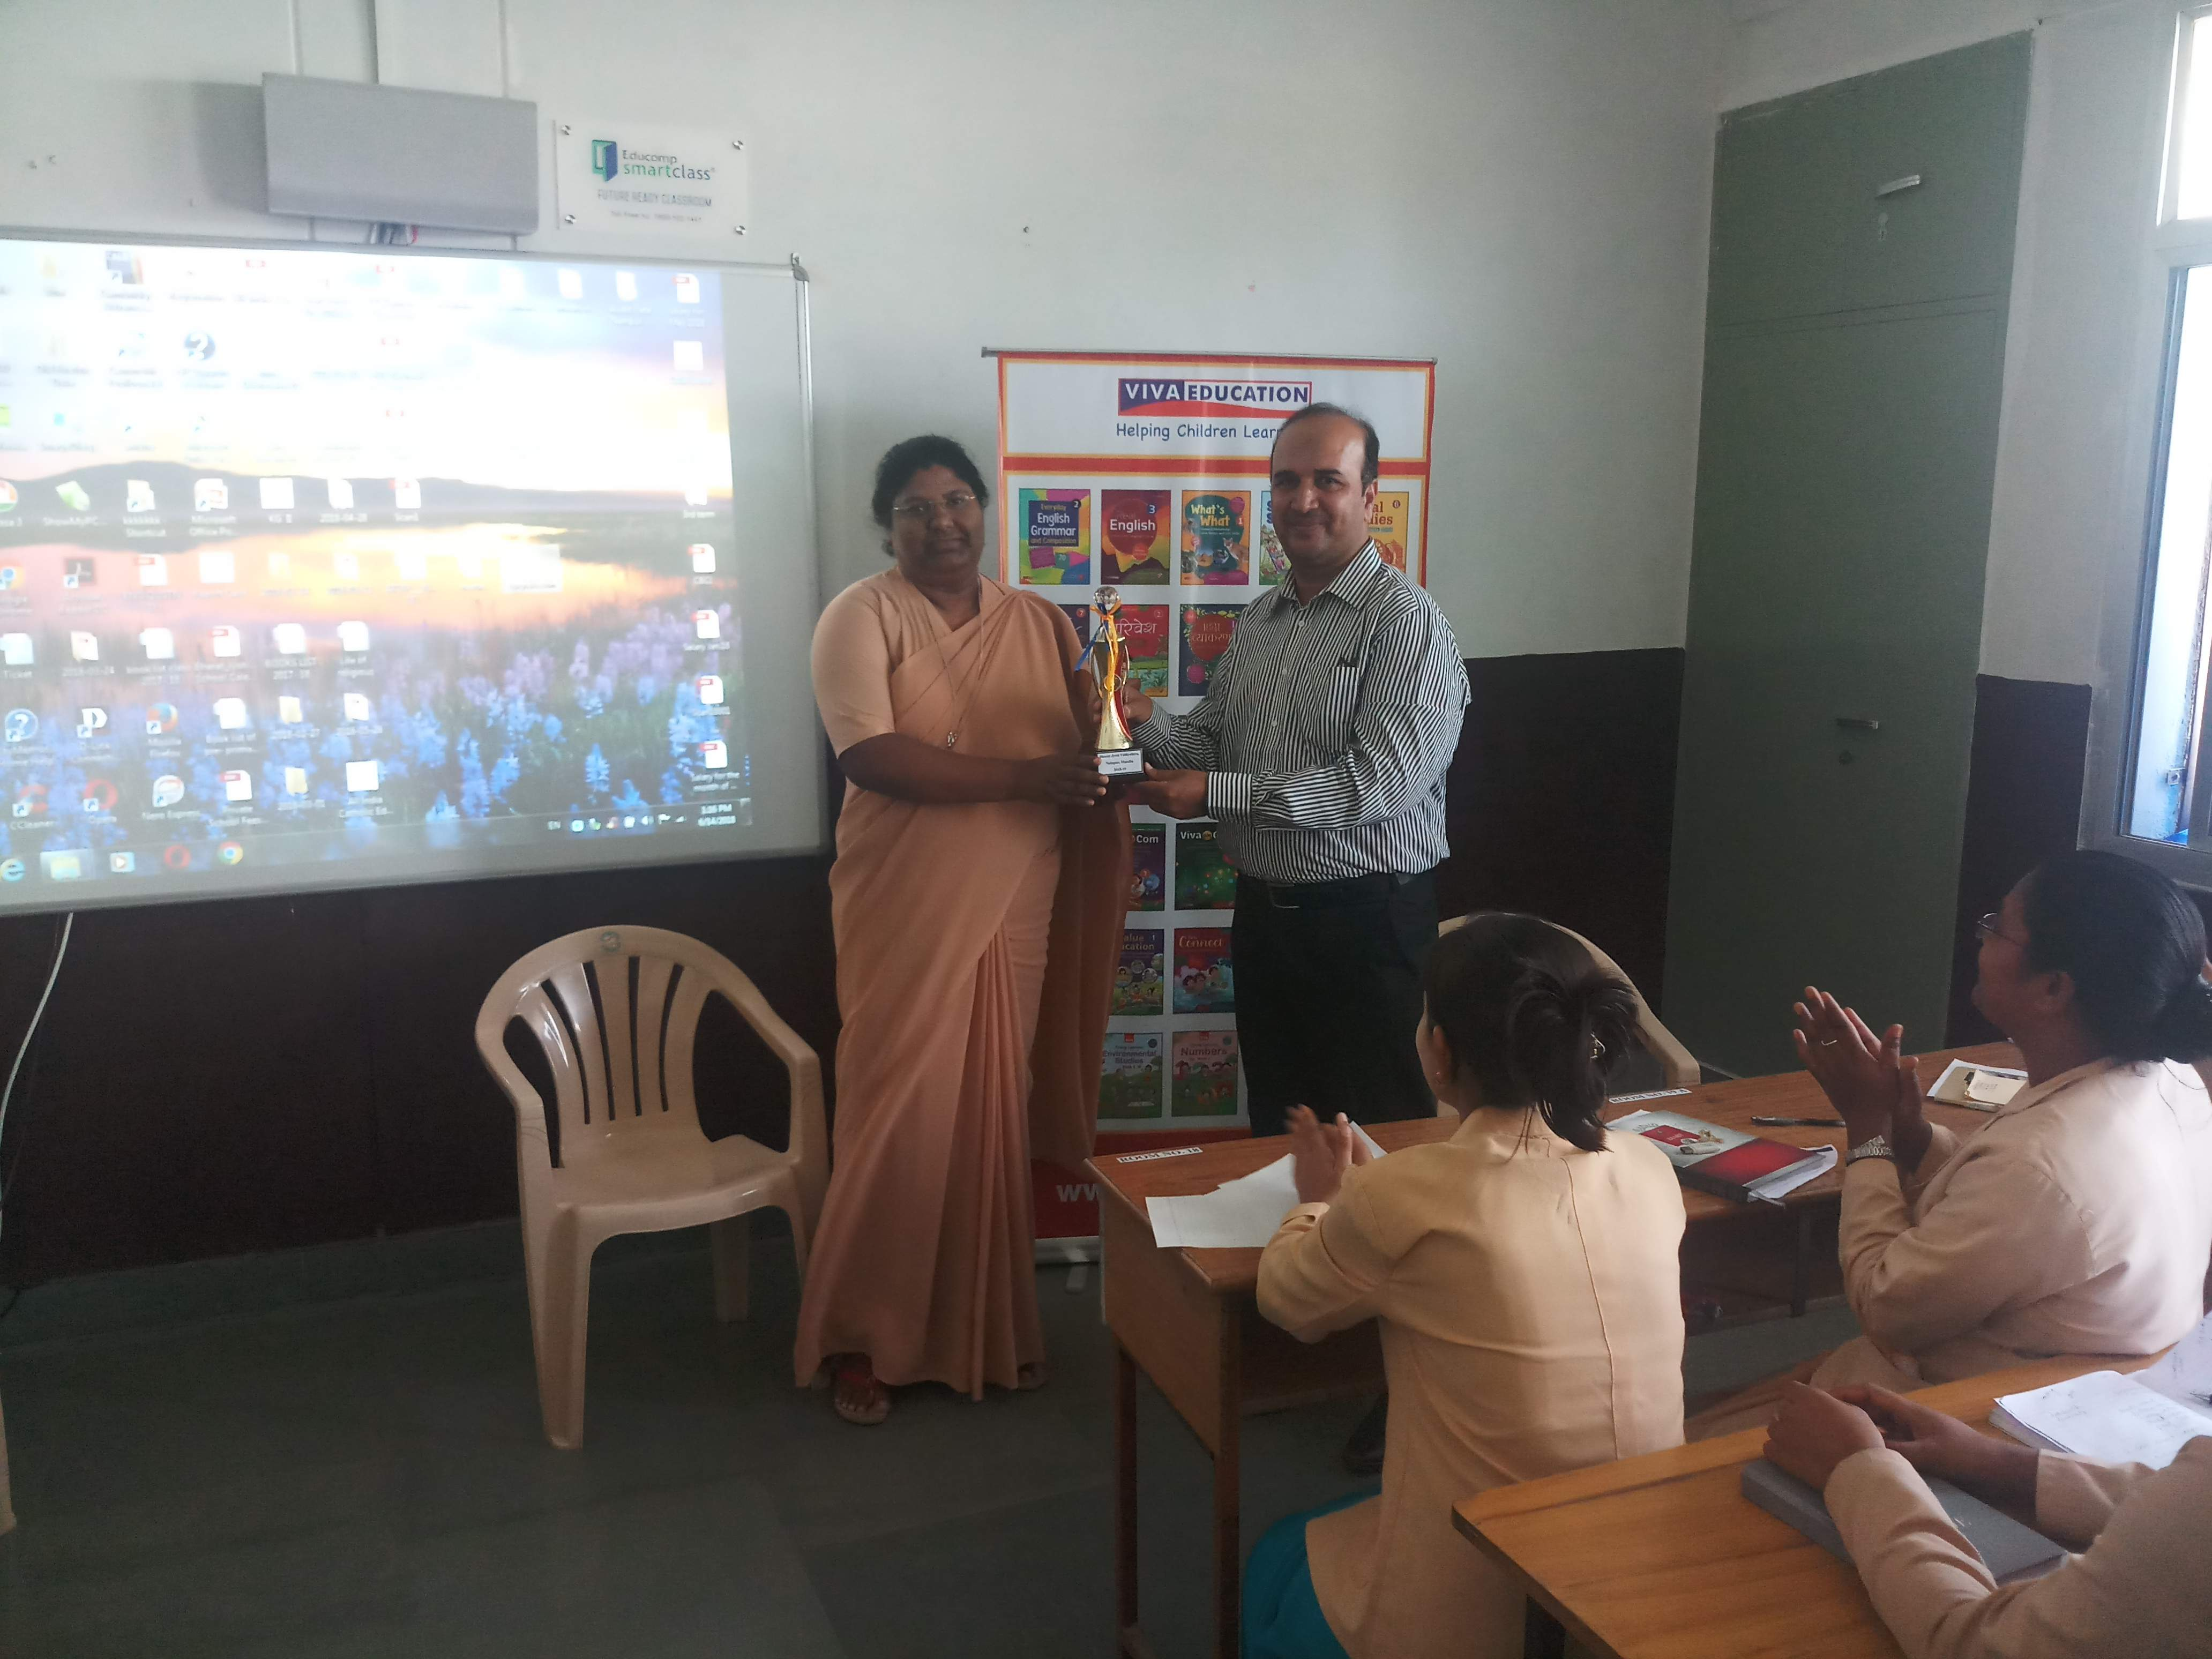 WORKSHOP ON CLASSROOM MANAGEMENT AND MODERN TRENDS IN EDUCATION IN BHARAT JYOTI SCHOOL, NAINPUR (MP).